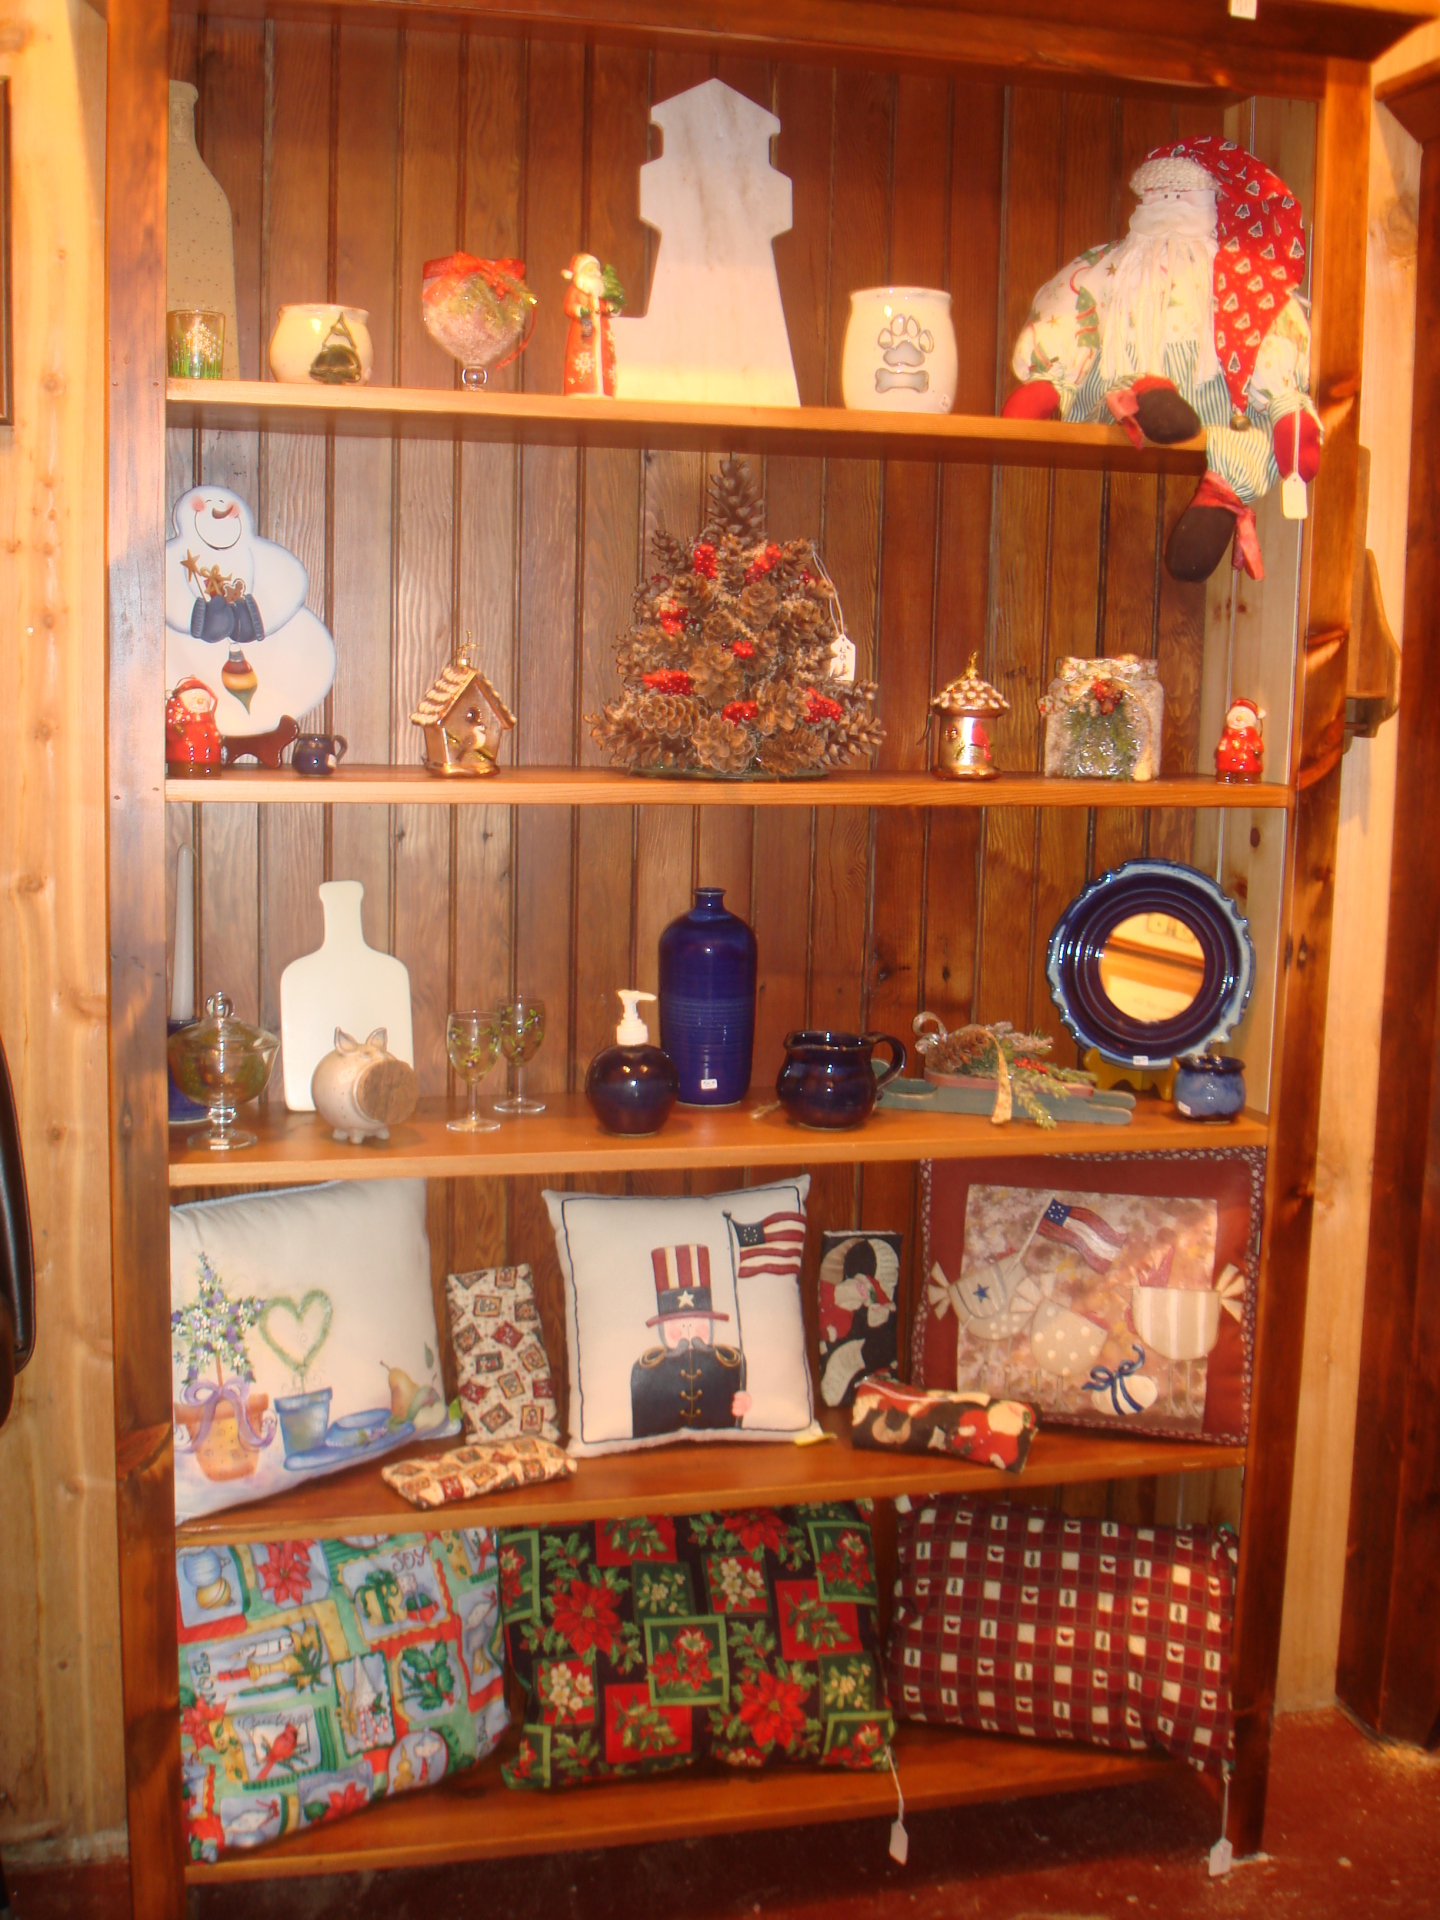 Shelves filled with cutting boards and other gift items